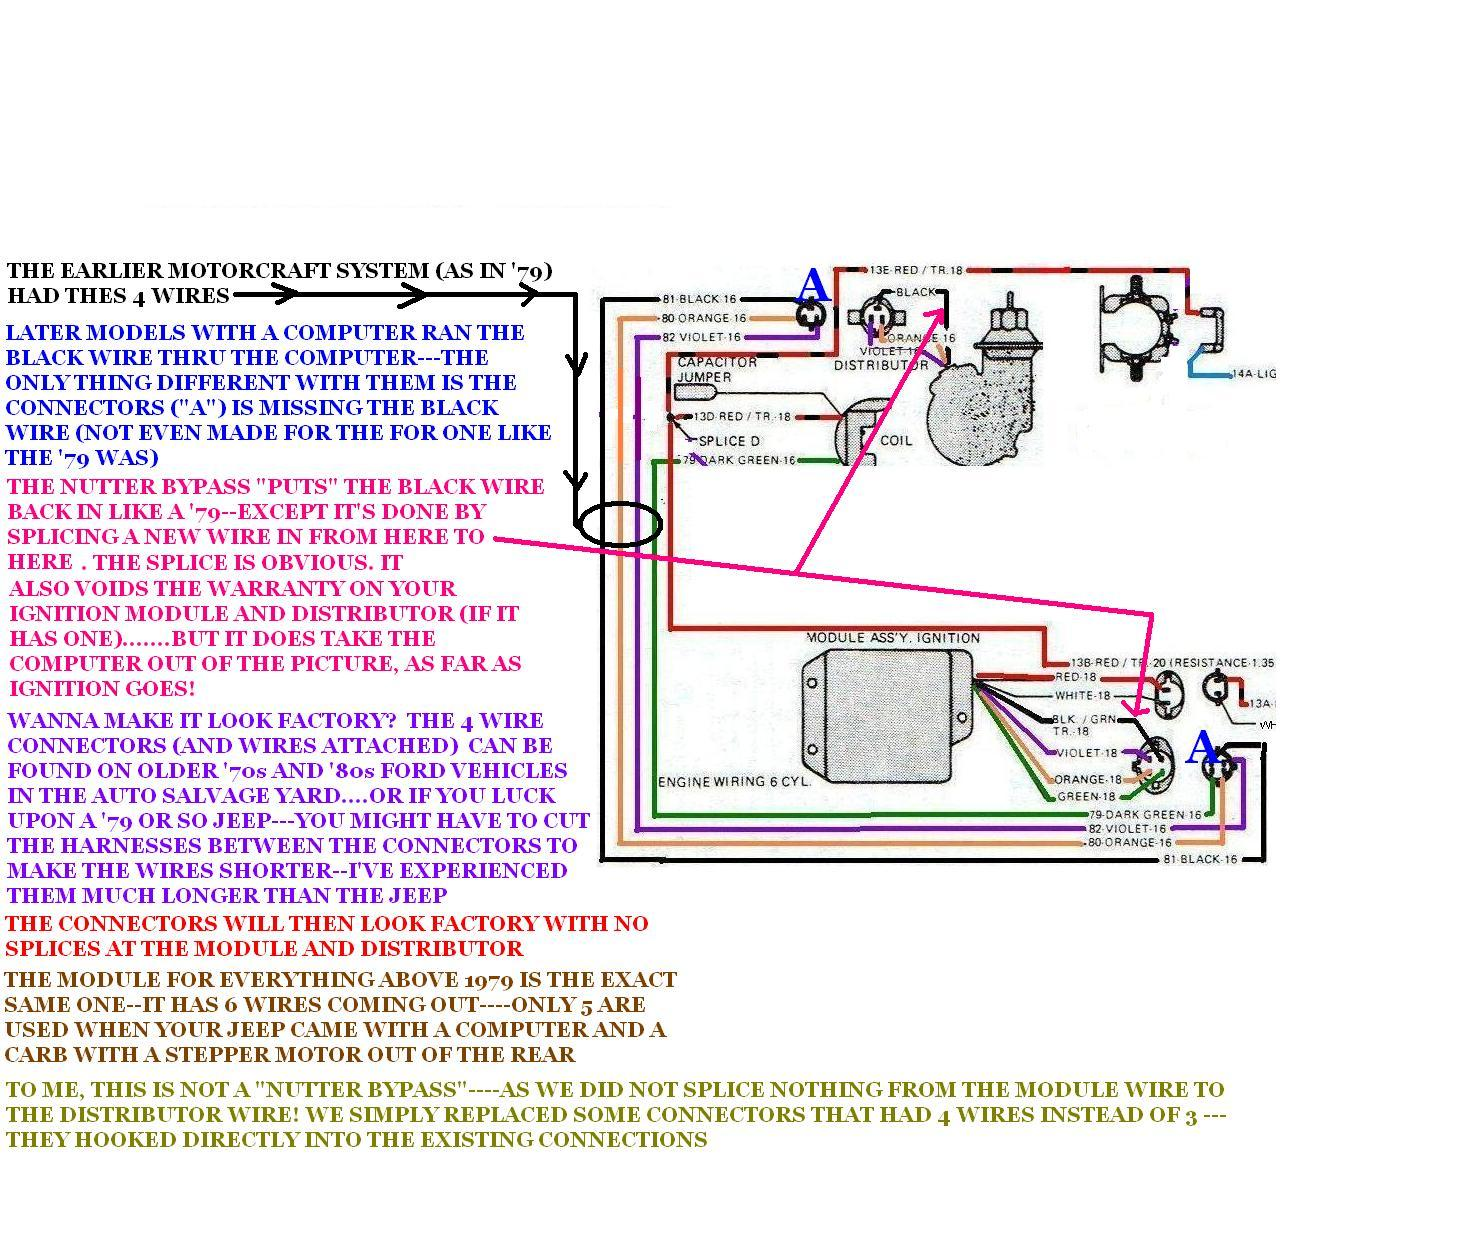 jeep cj7 wiring diagram hw 0231  diagram as well jeep nutter bypass diagrams on jeep tj jeep cj wiring diagram nutter bypass diagrams on jeep tj